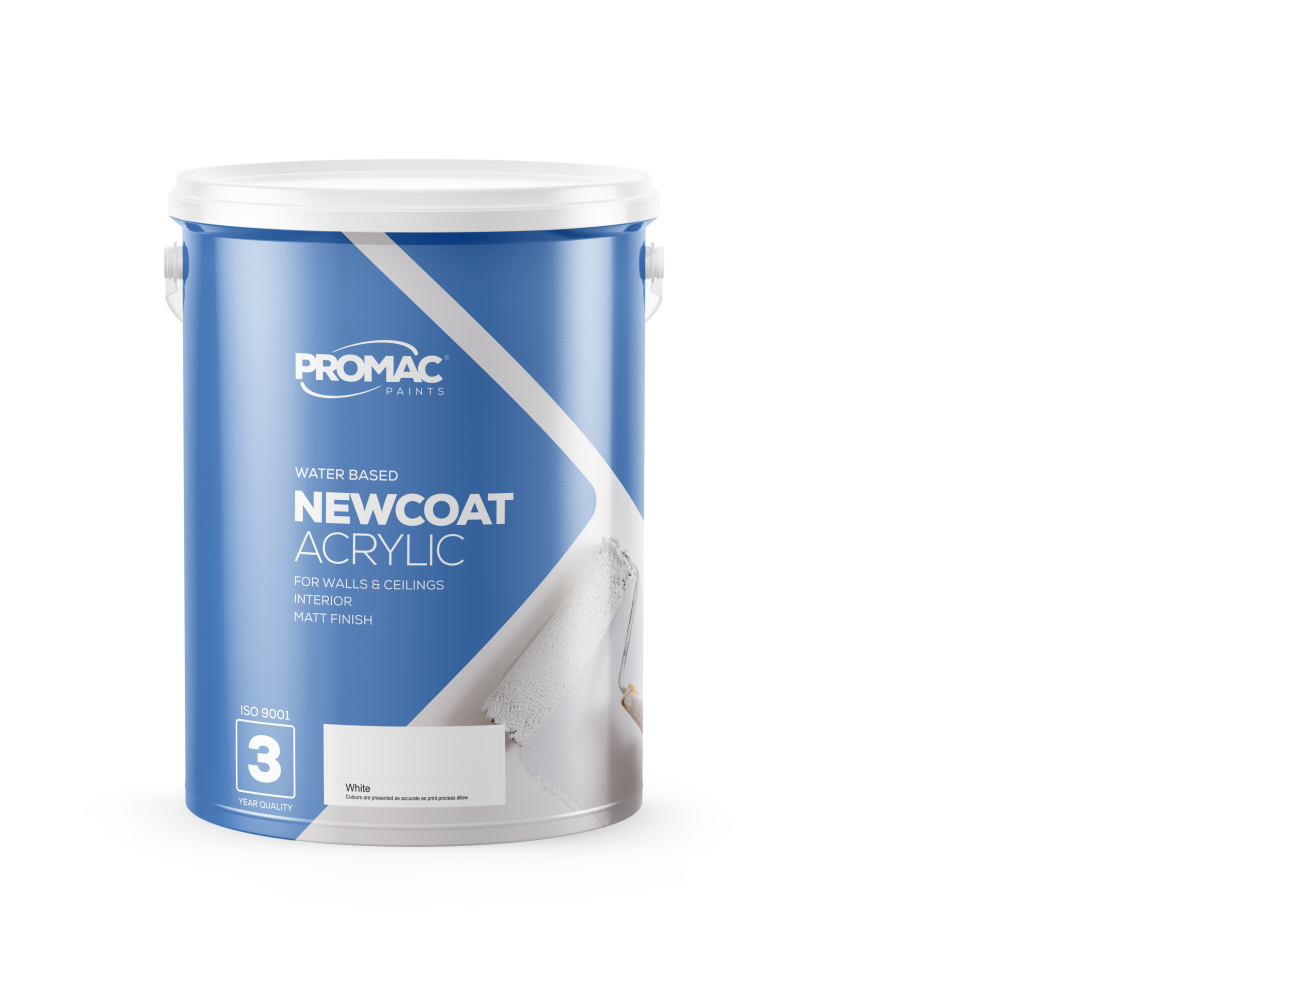 nEWCOATACRYLIC - WATER BASEDPromac New Coat Acrylic is a quality decorative acrylic paint for interior use with excellent hiding power. May be used as a filler coating under medium quality acrylic paints on interior walls and ceilings over suitably prepared surfaces.